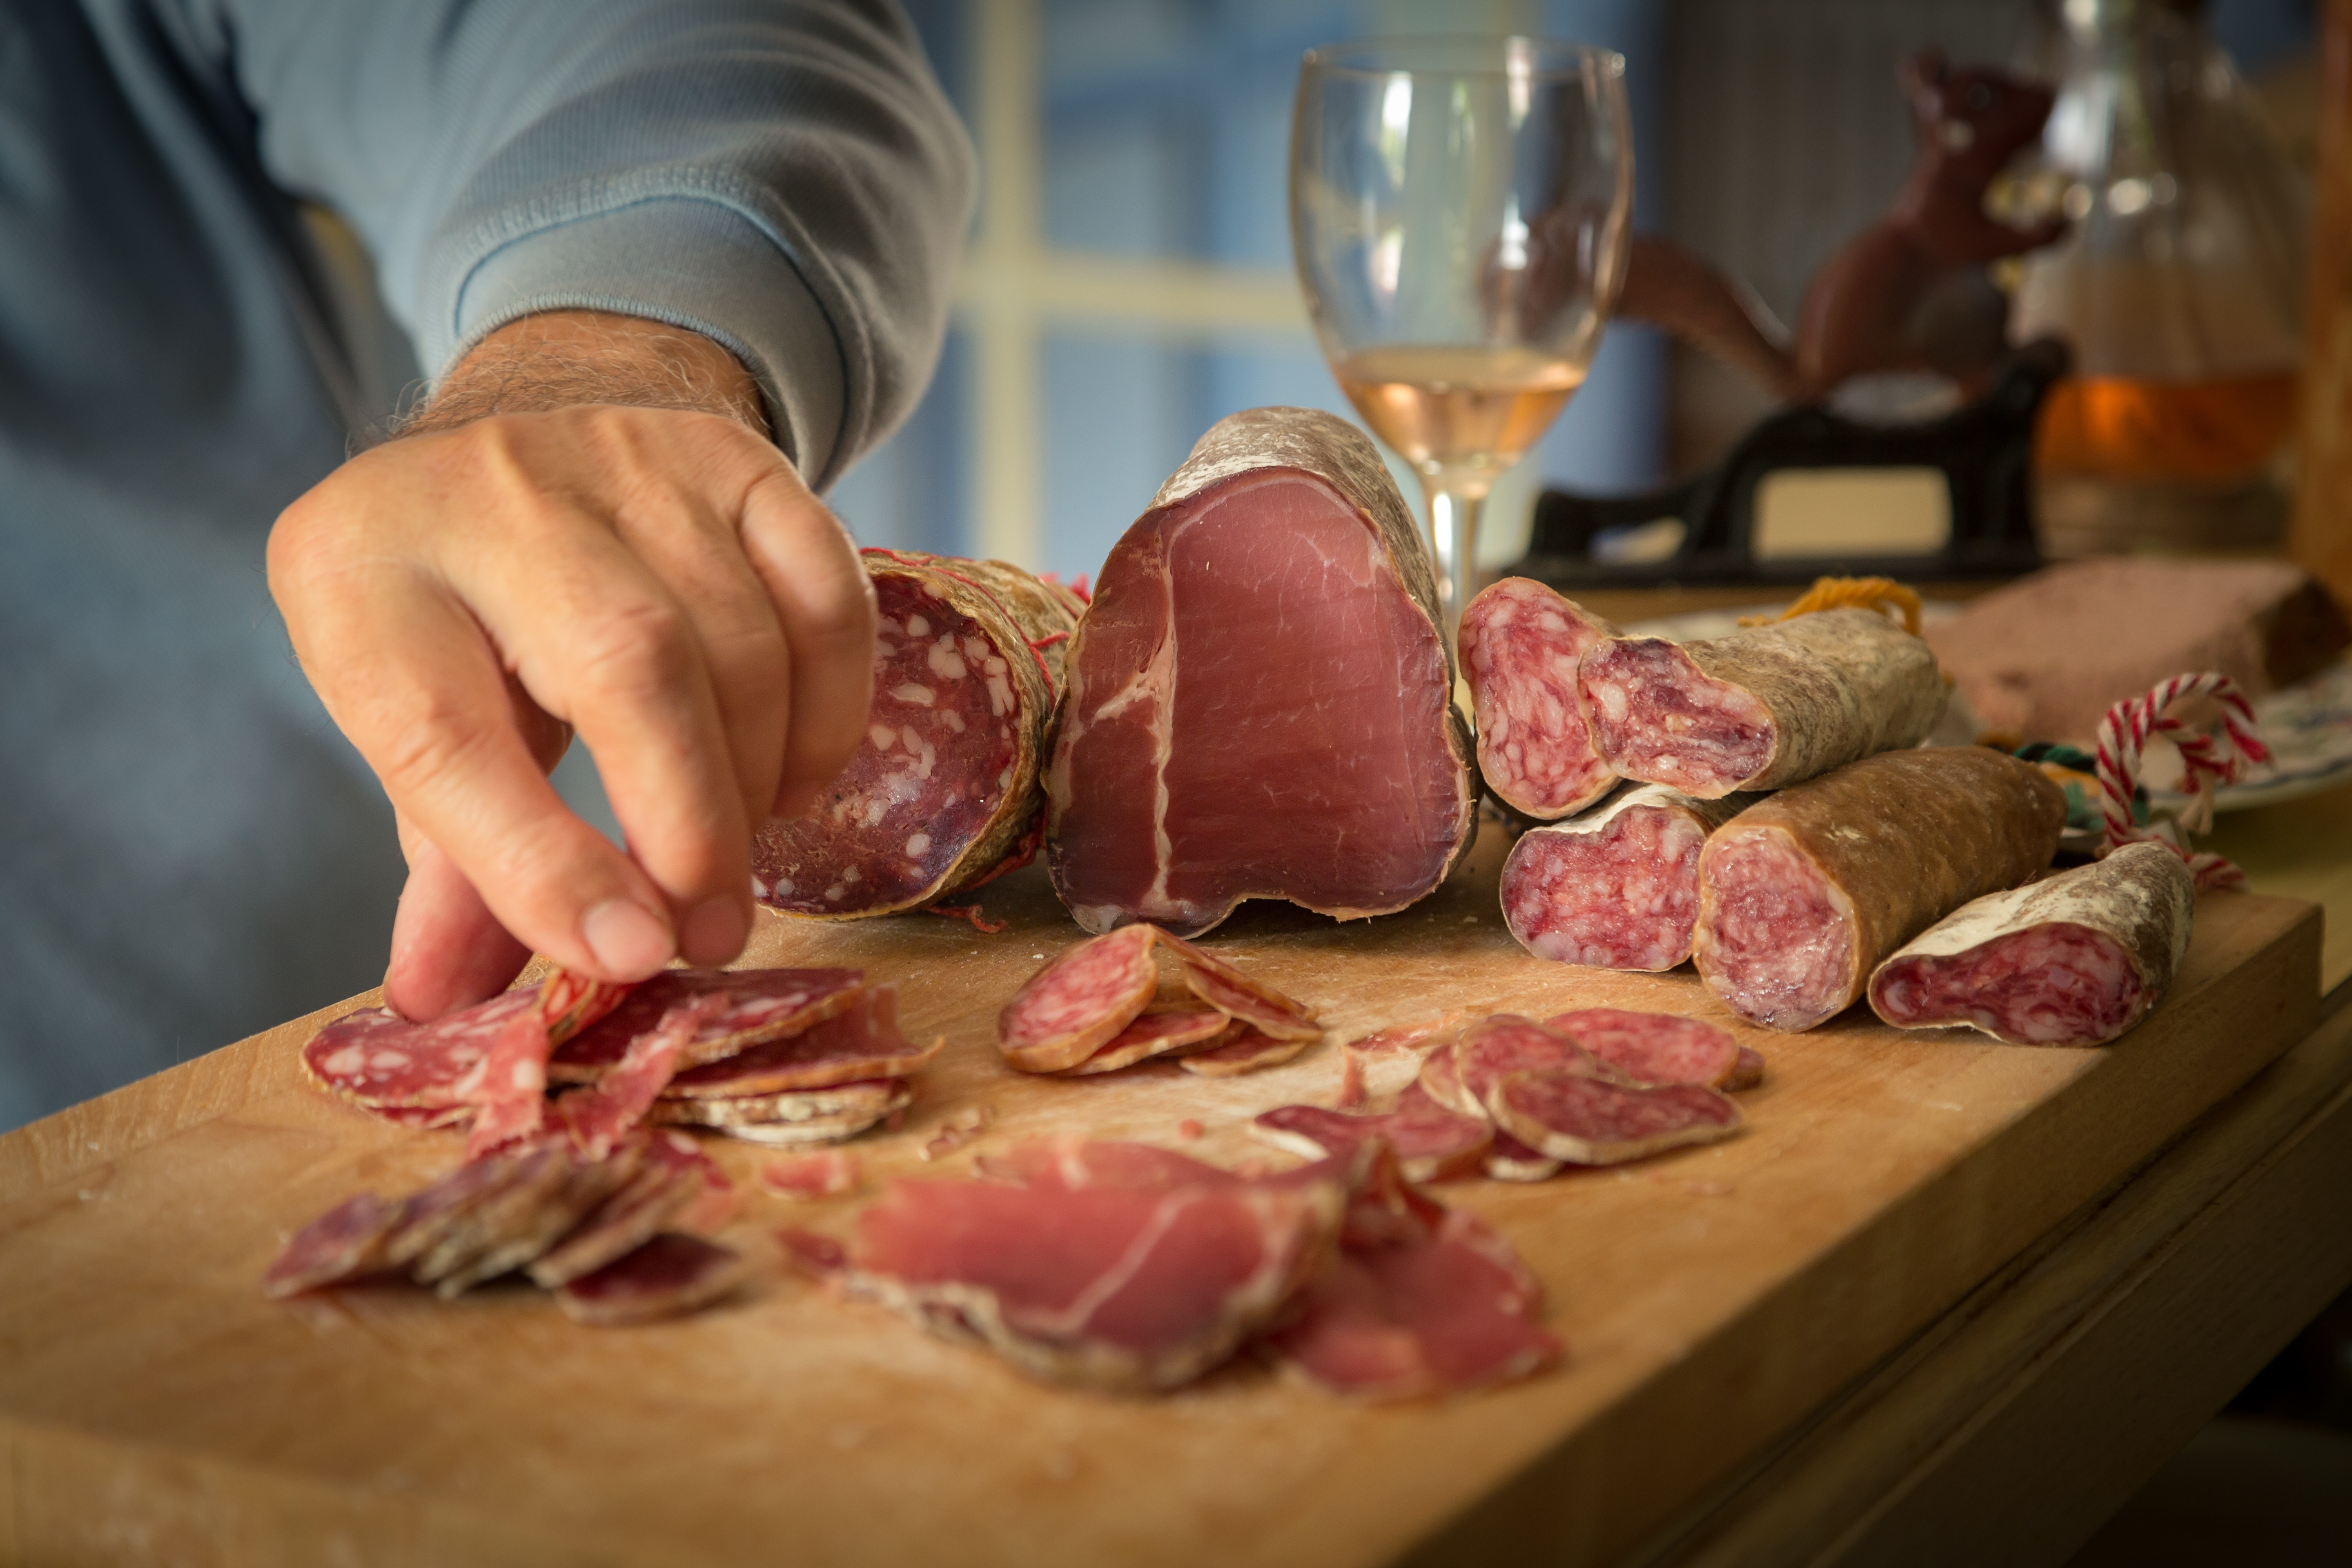 Charcuterie meats being cut on a wooden board